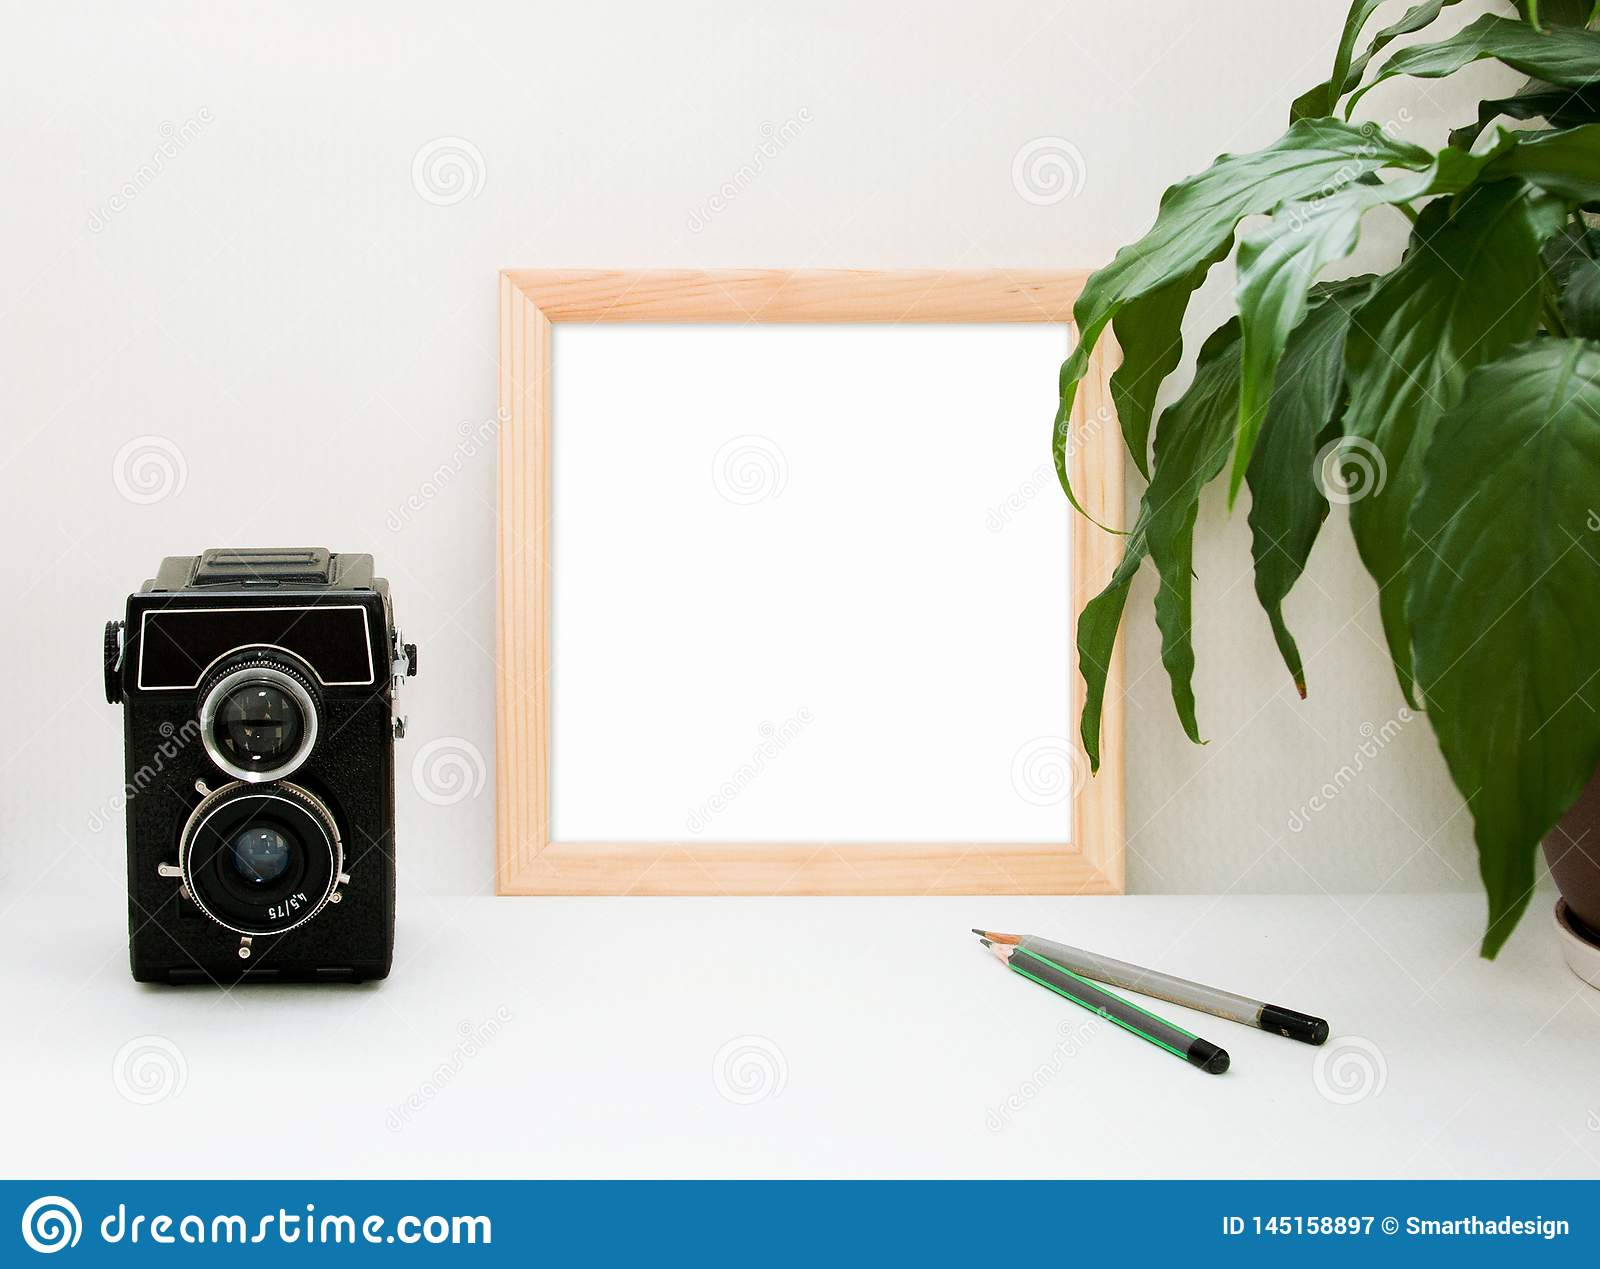 Mock up wooden frame, old camera, plant and pencils. Interior home square poster mockup with wood frame and green leaves on white